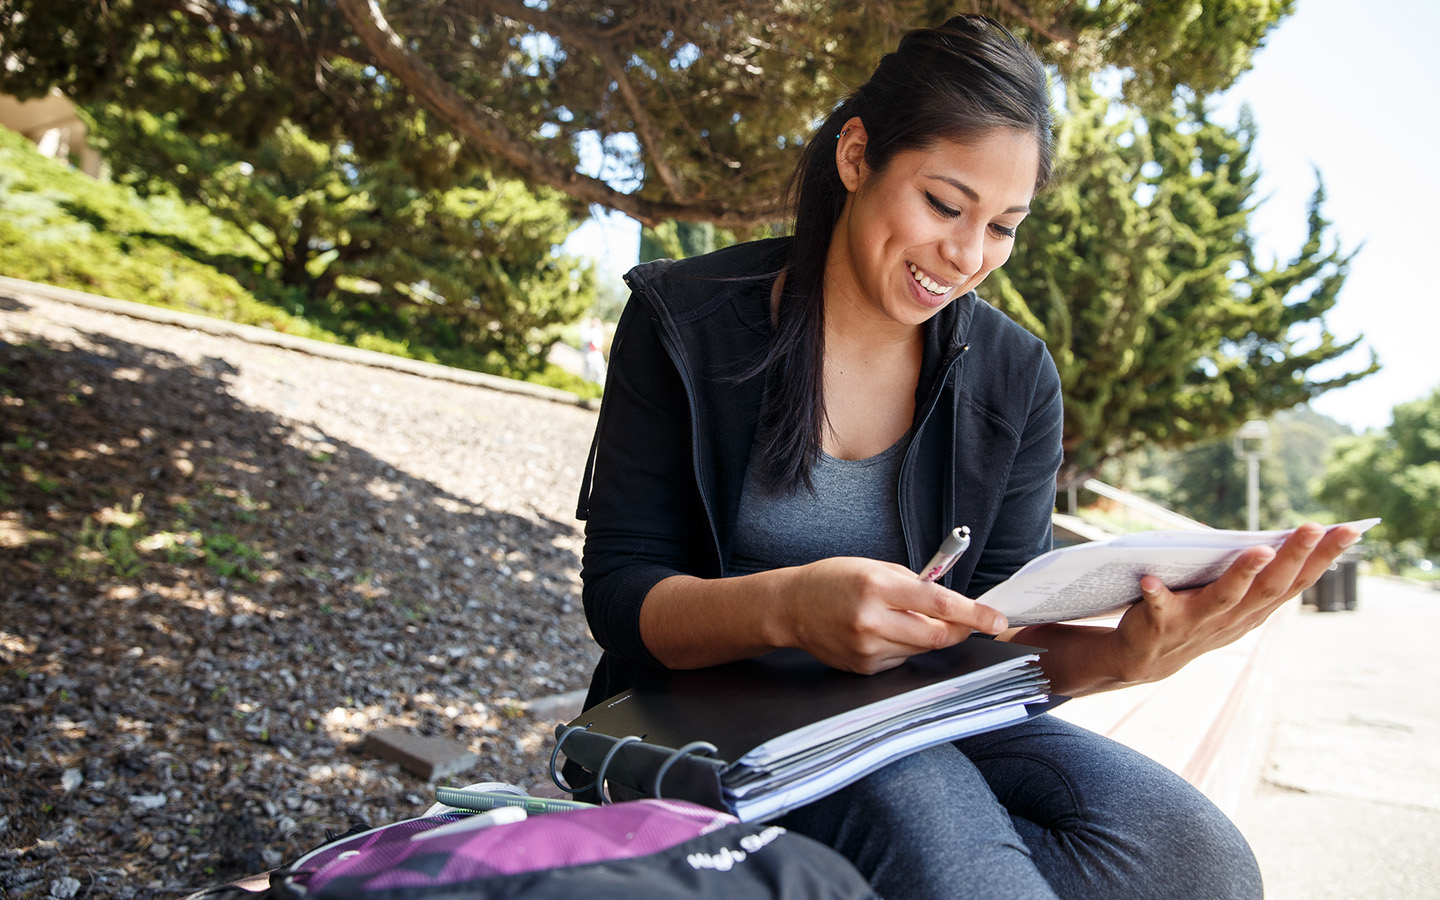 Woman studying on campus steps